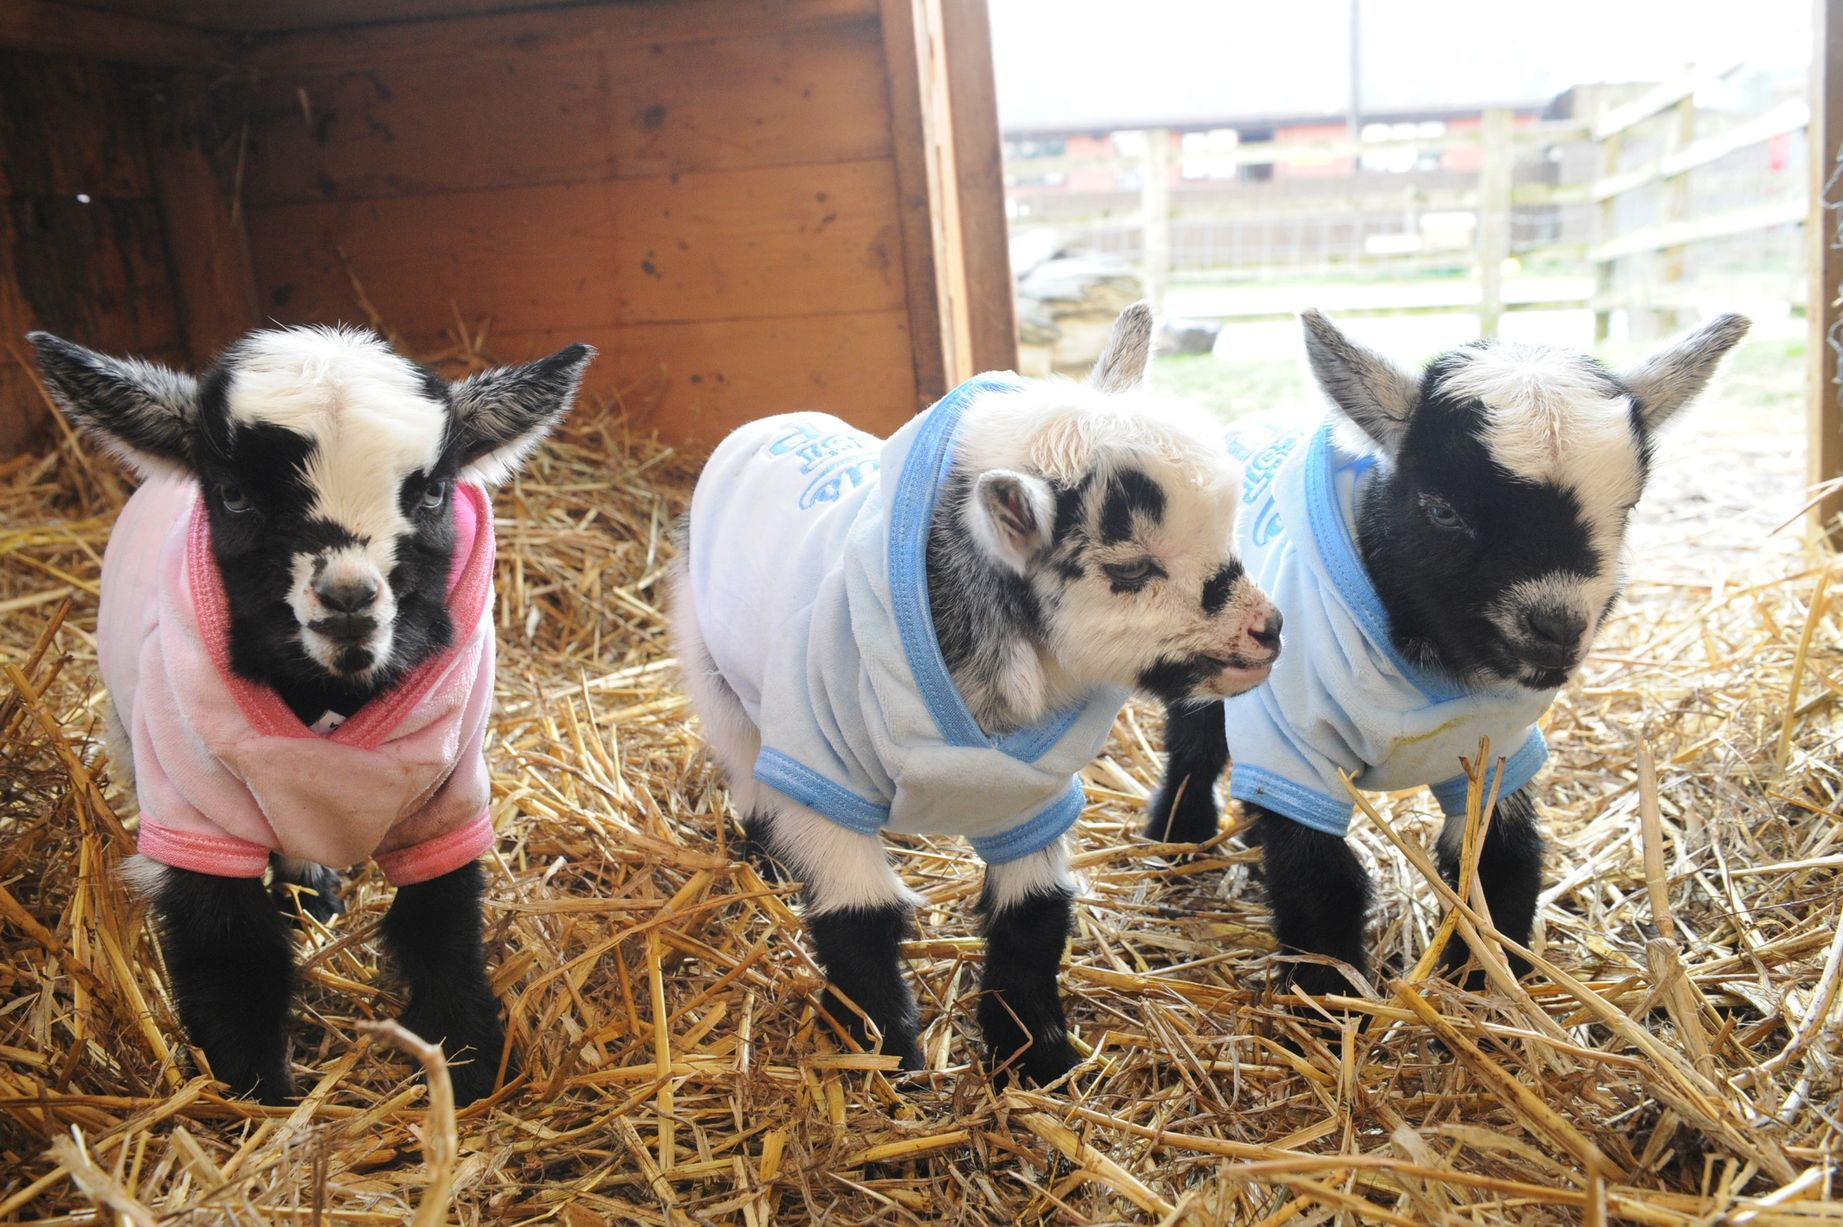 10 Cute Photos of Baby Goats in Sweaters to Make You Go ...